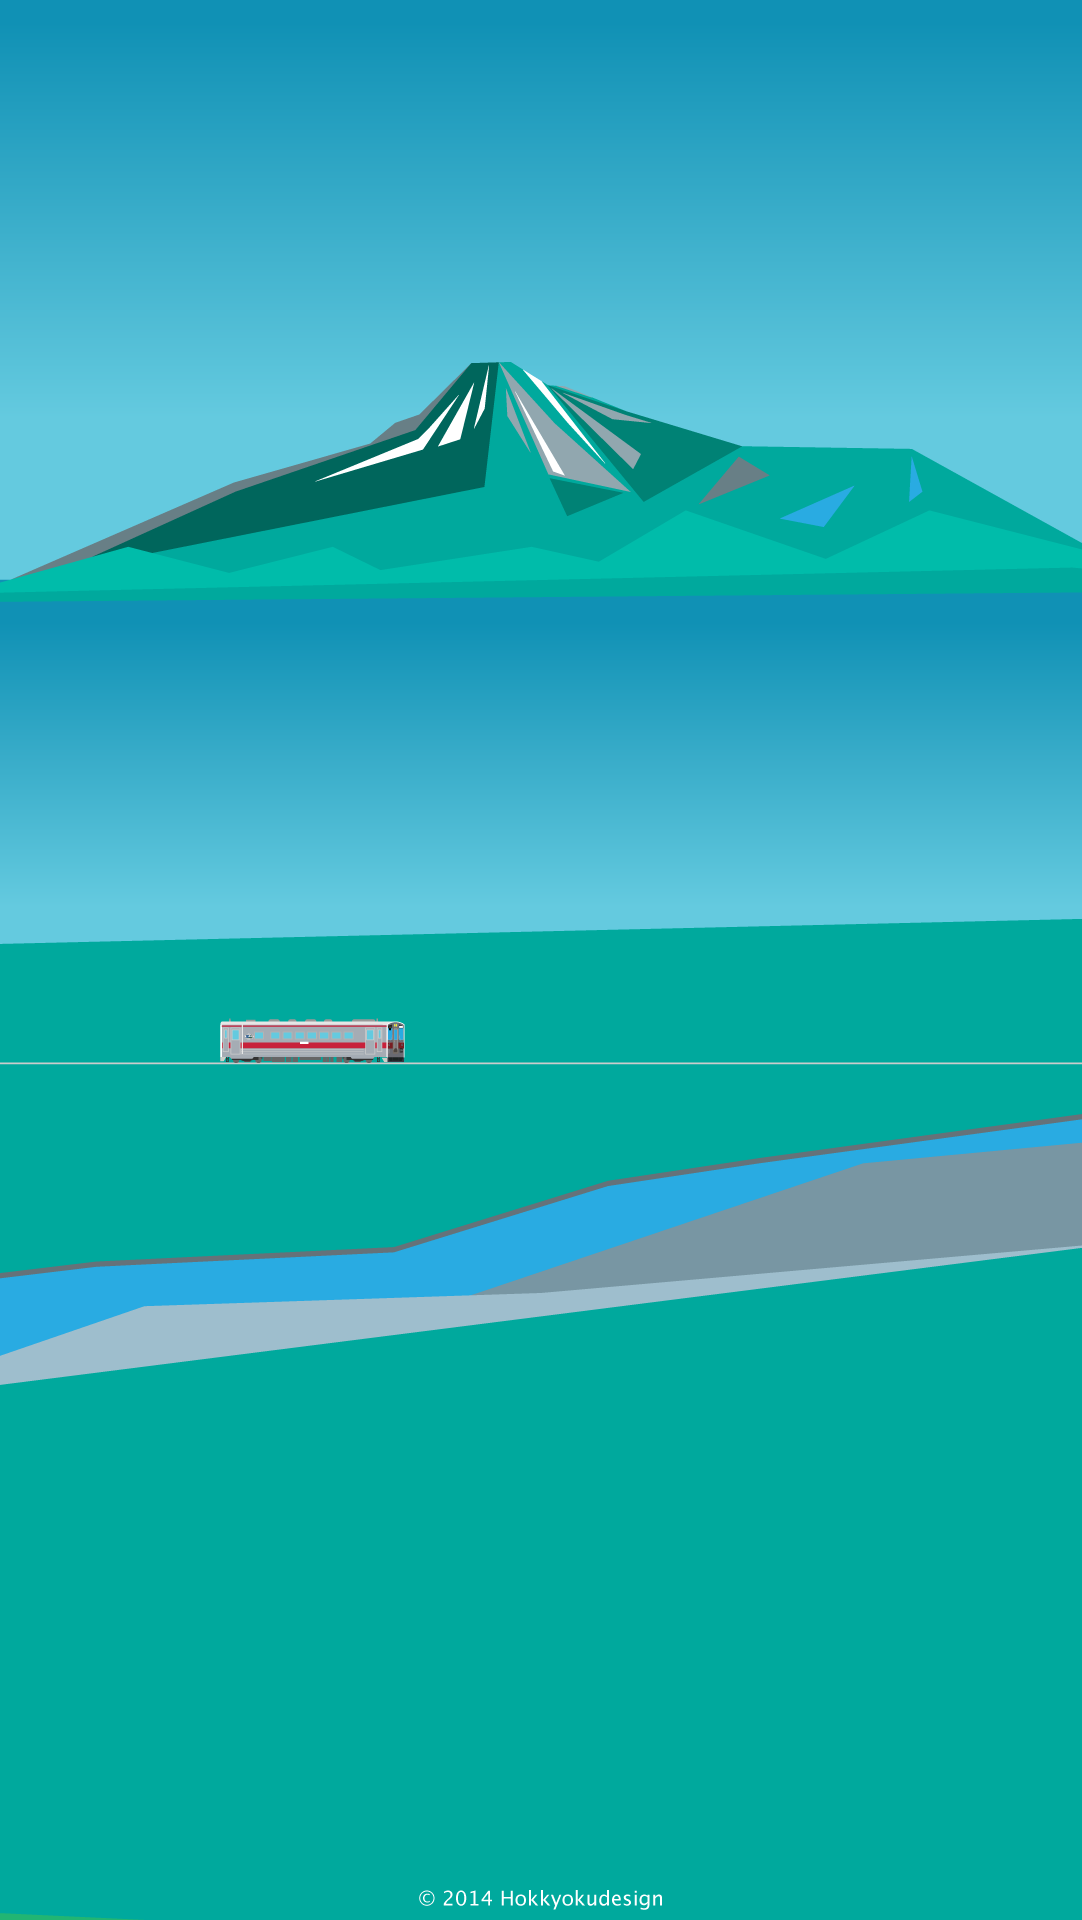 Hd日本のイラスト風景壁紙 夏の宗谷本線 利尻島ハイライト Landscape Of Japan Wallpaper To Iphone